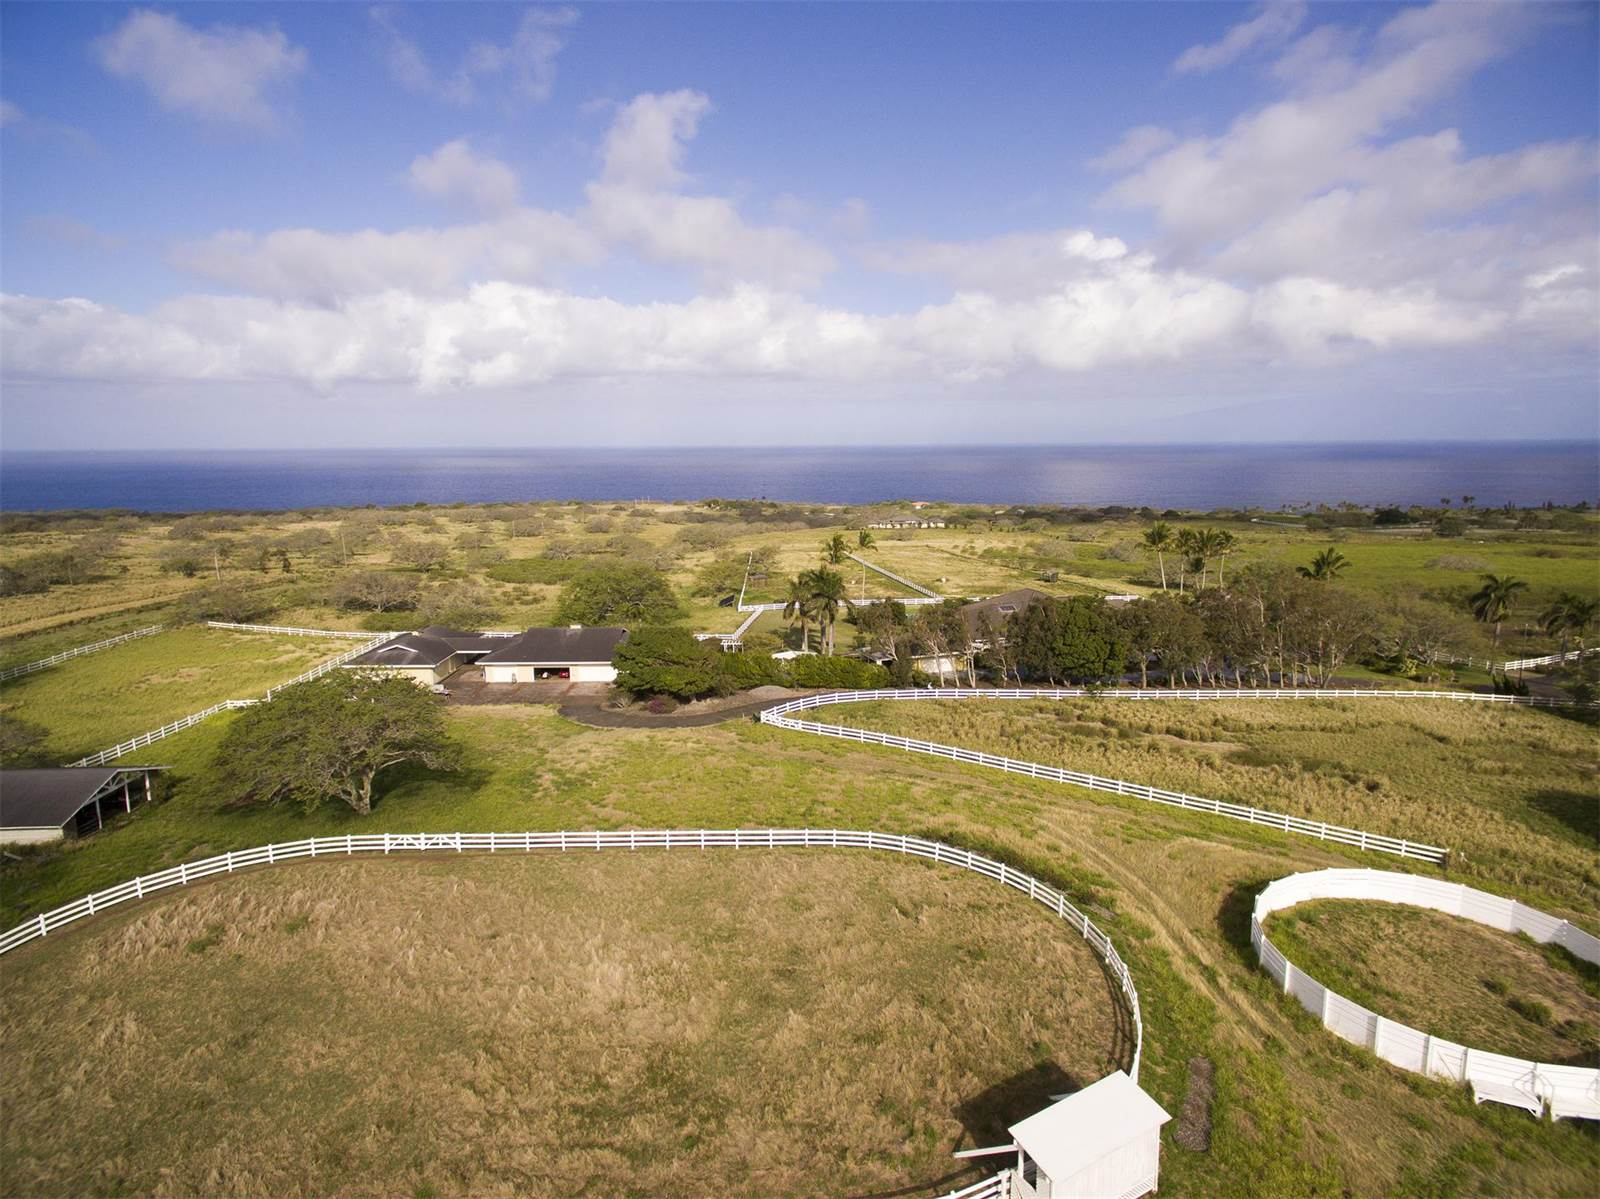 One of the few true equestrian estates on the Big Island, this elegant Puakea Bay Ranch home combines the best of resort and rural lifestyles.